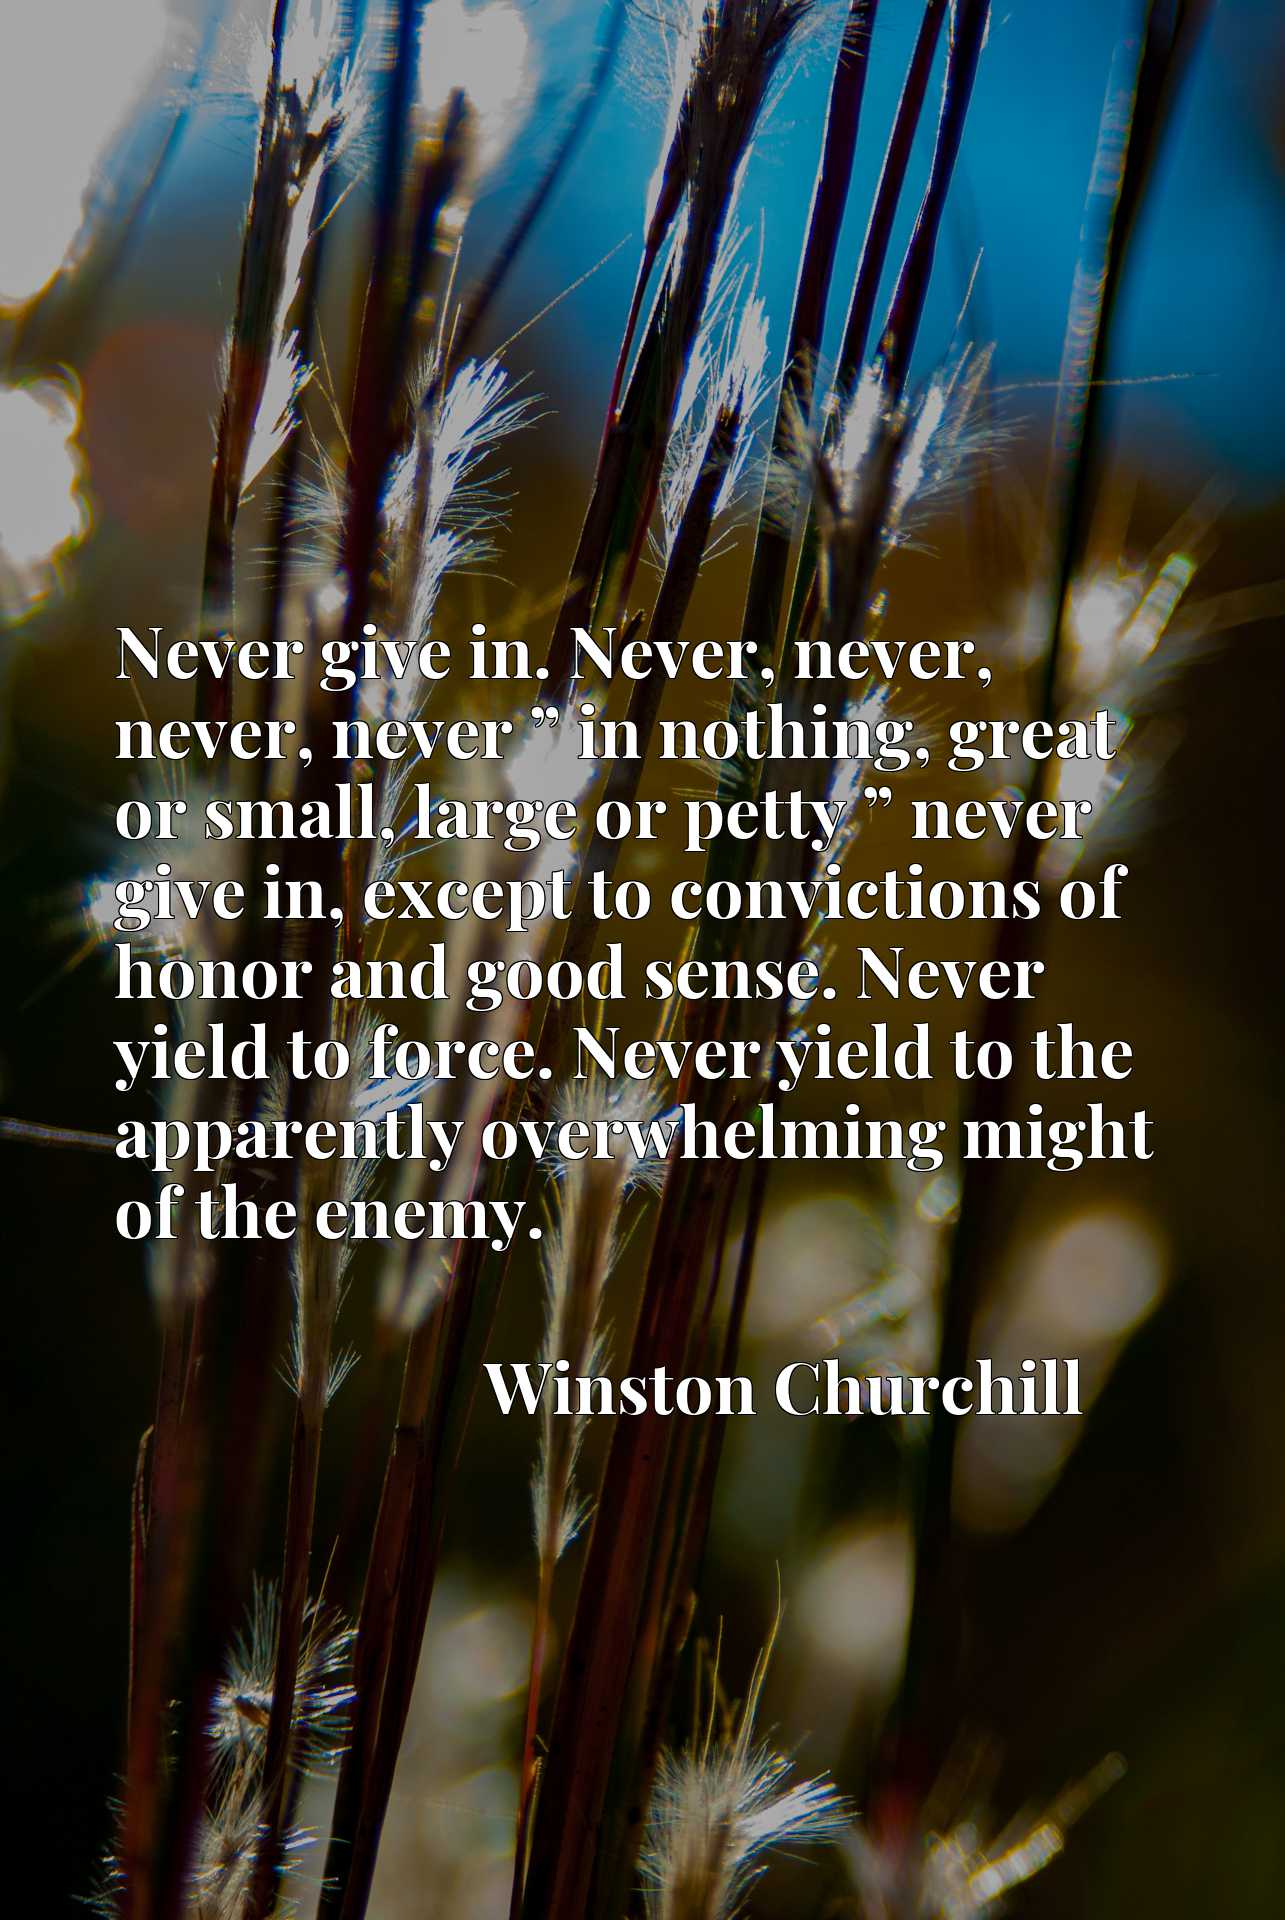 """Never give in. Never, never, never, never """" in nothing, great or small, large or petty """" never give in, except to convictions of honor and good sense. Never yield to force. Never yield to the apparently overwhelming might of the enemy."""